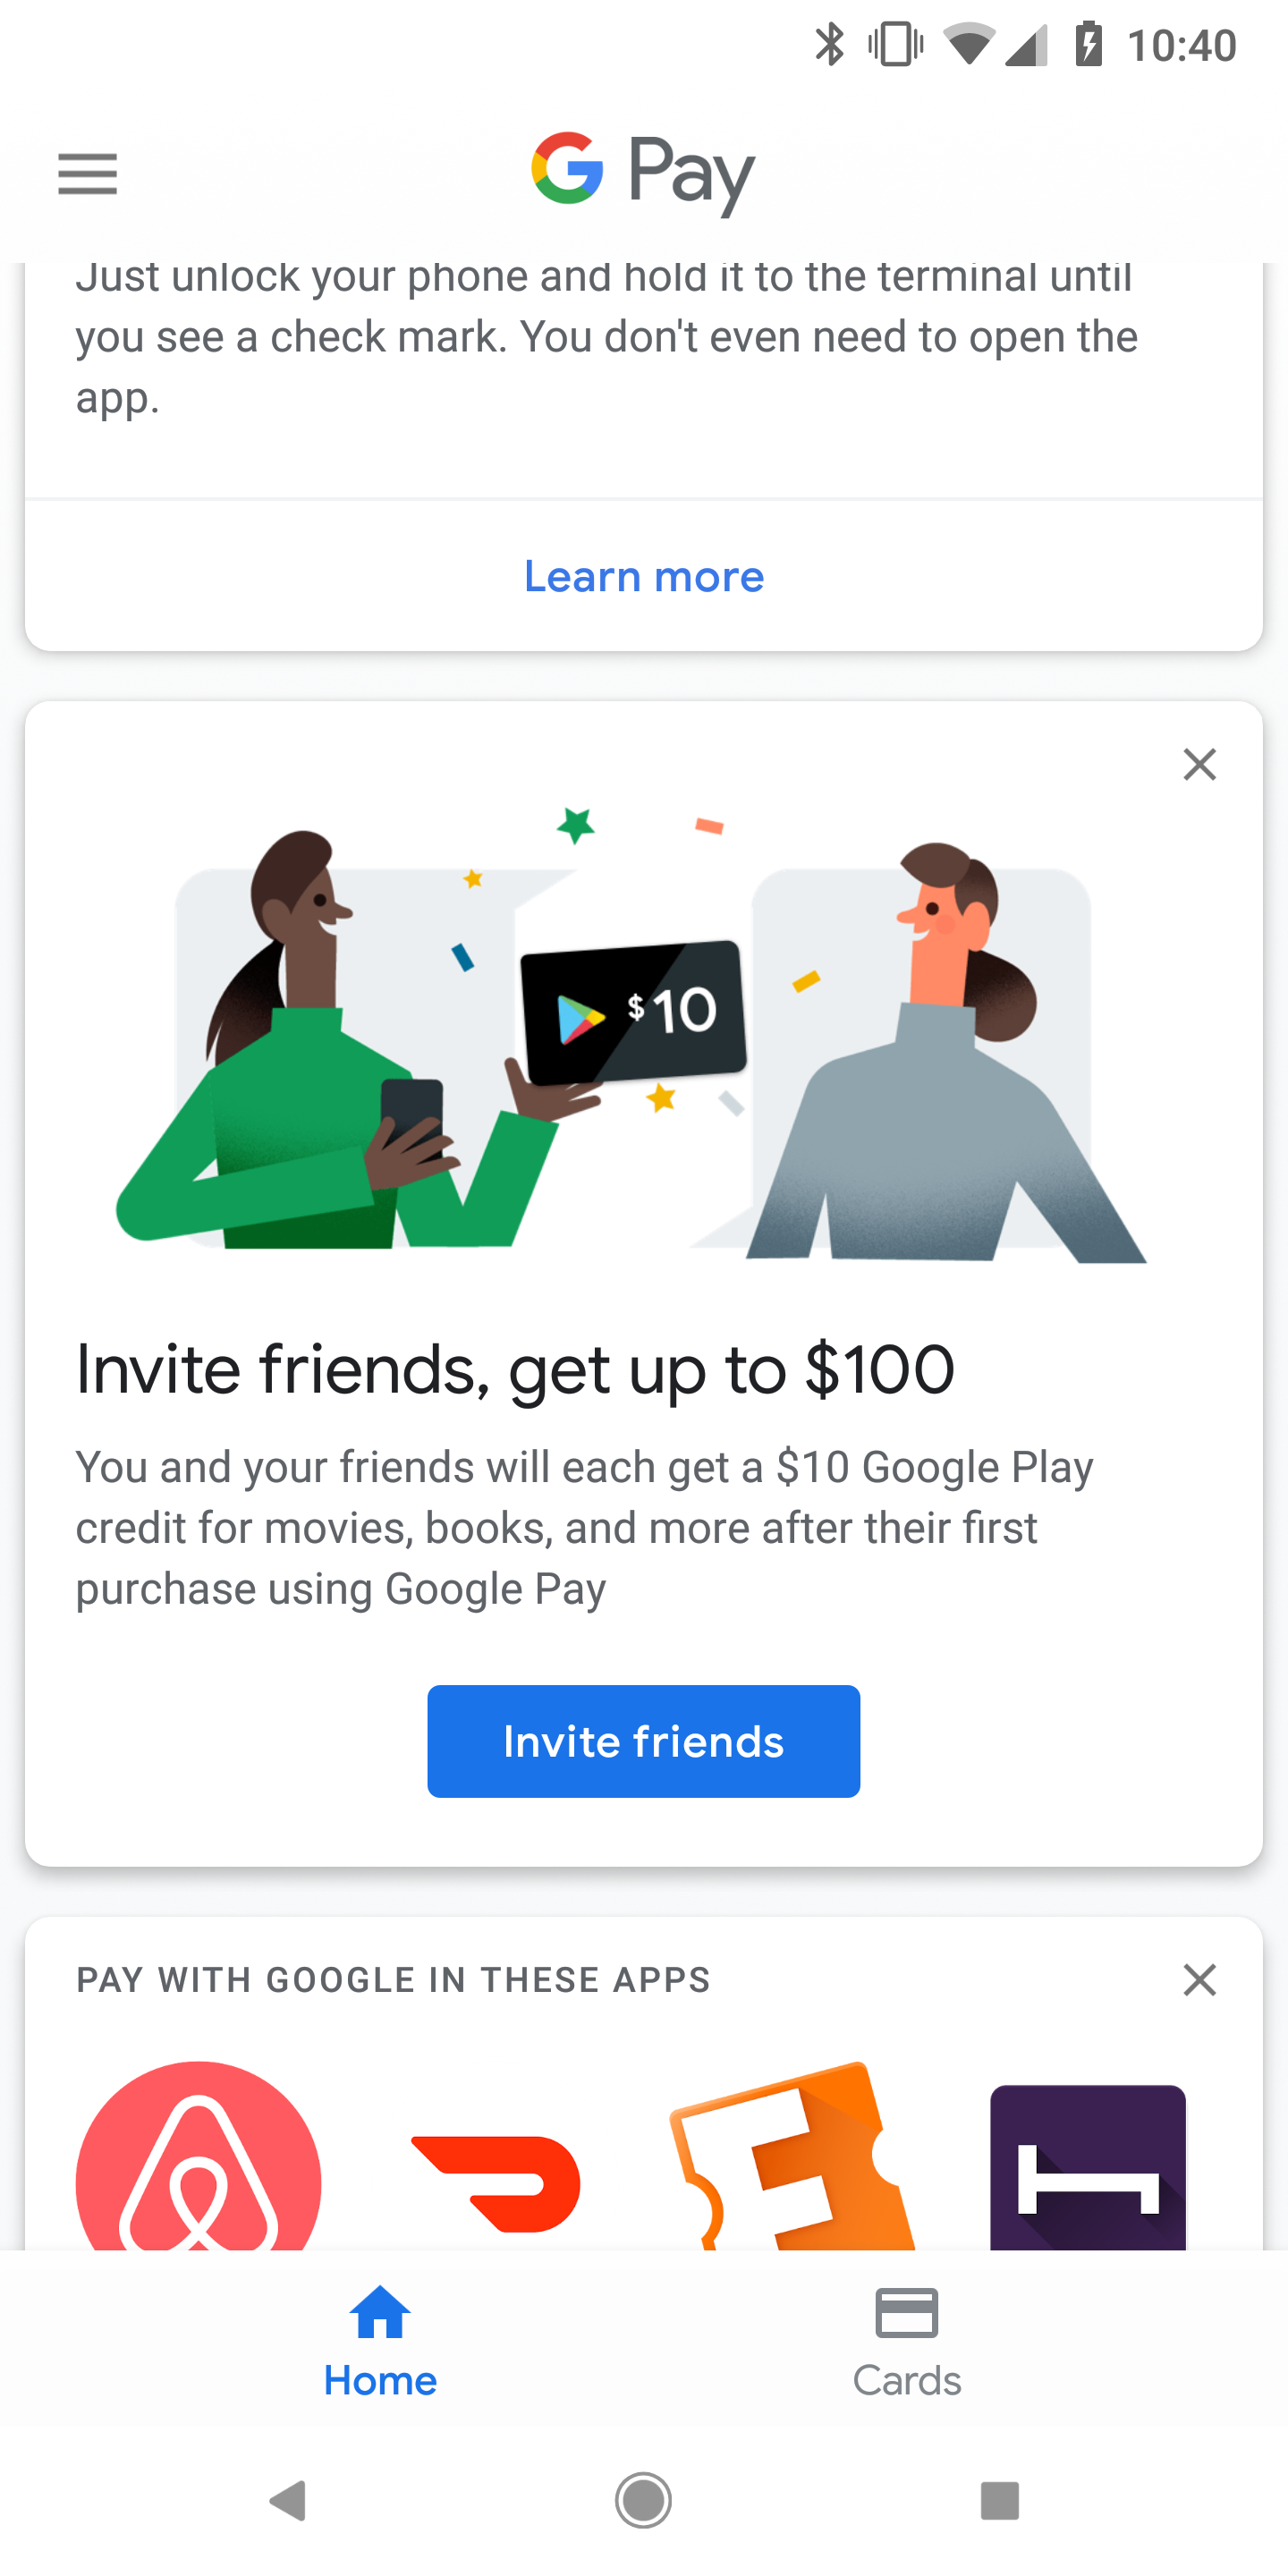 Google Pay offering $10 Play credit to you and a friend per referral